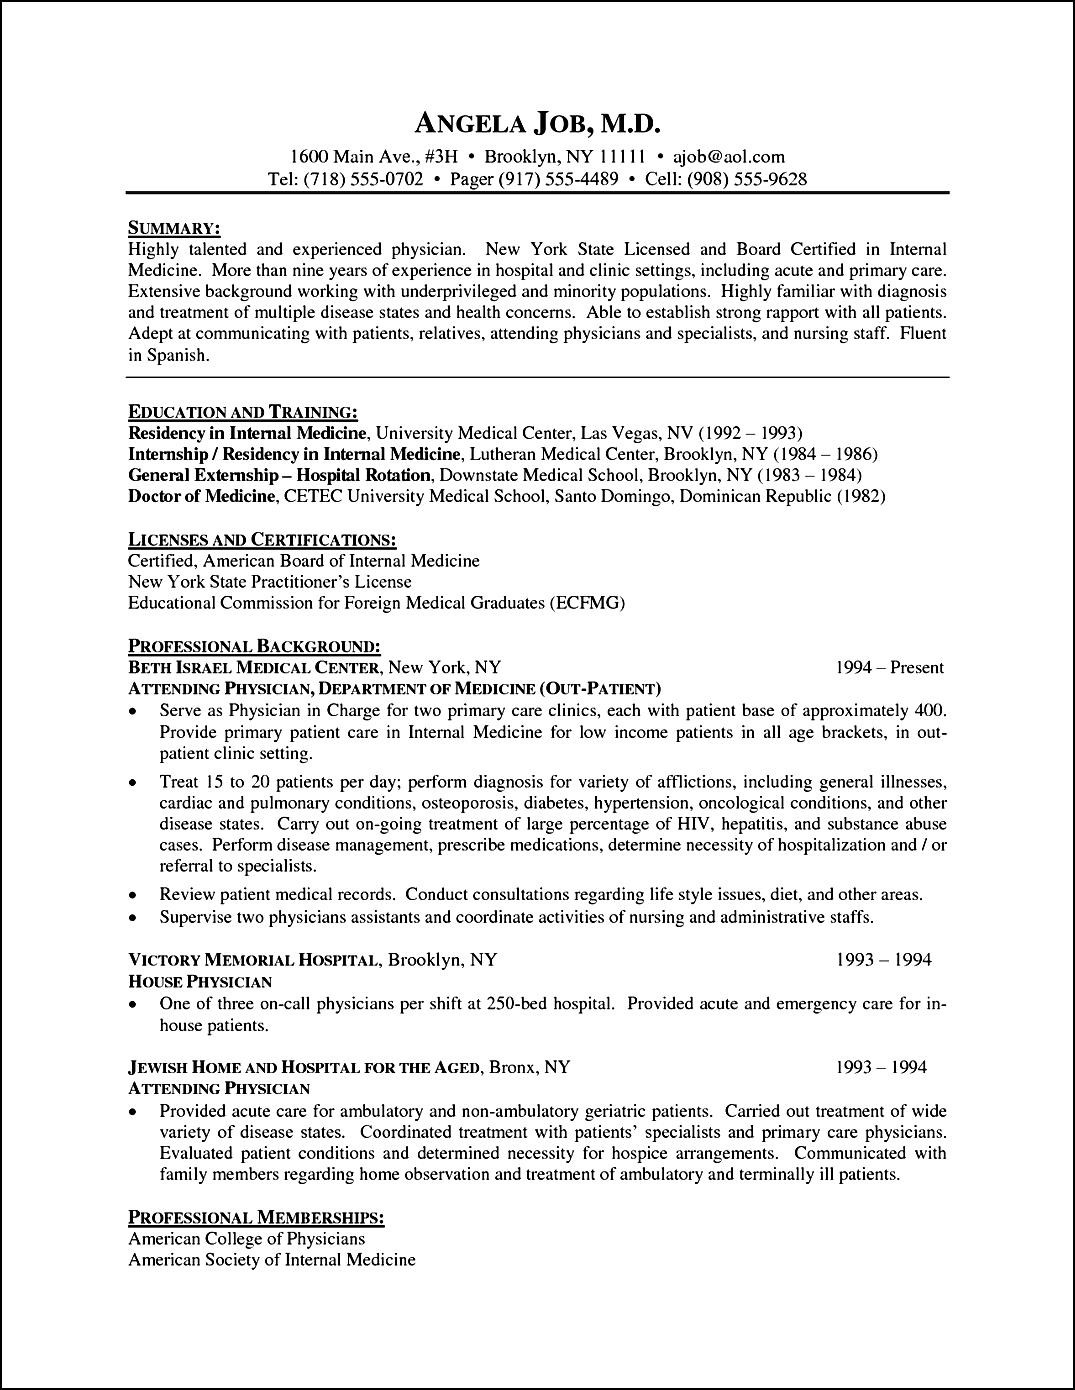 curriculum vitae template for physicians  free samples